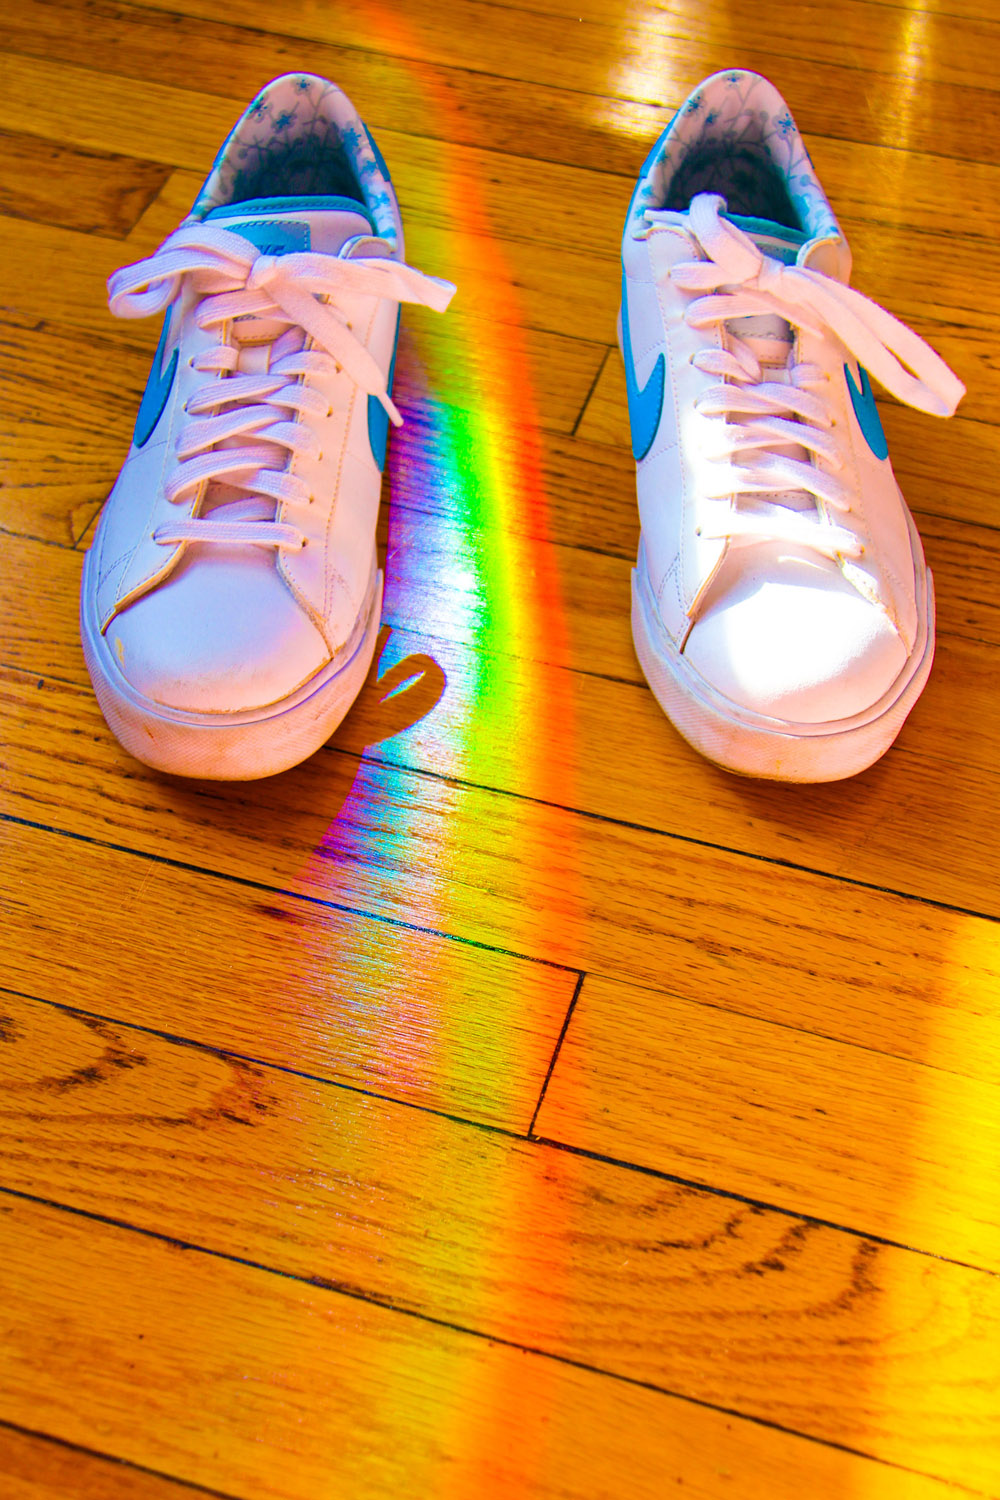 prisms, rainbows, and Nikes